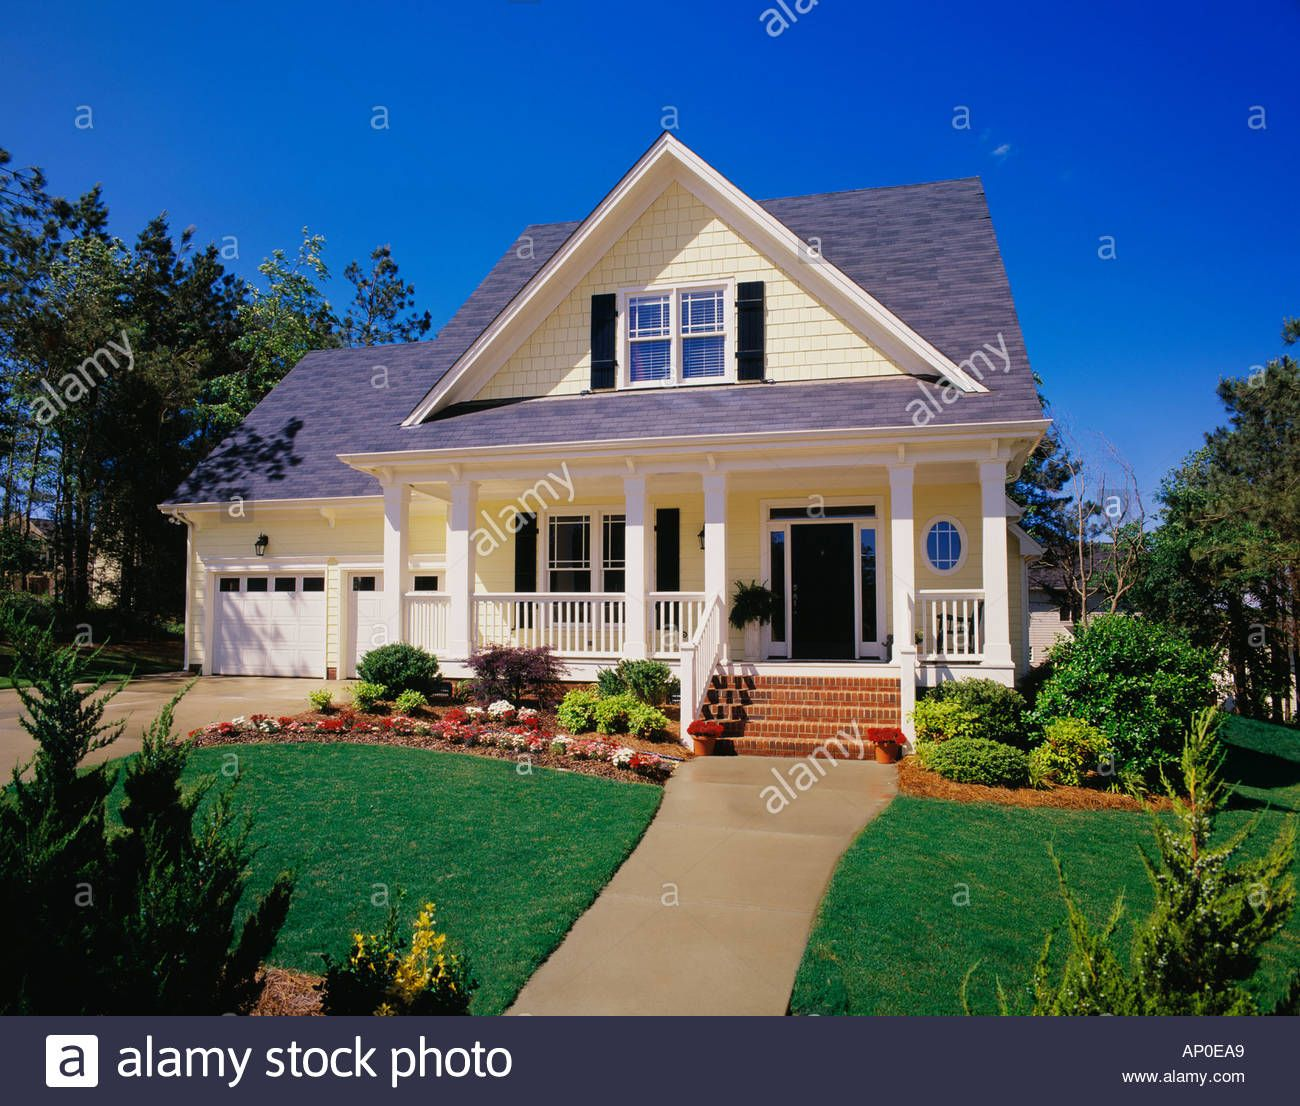 Small Two Story Yellow House With Black Shutters A Porch